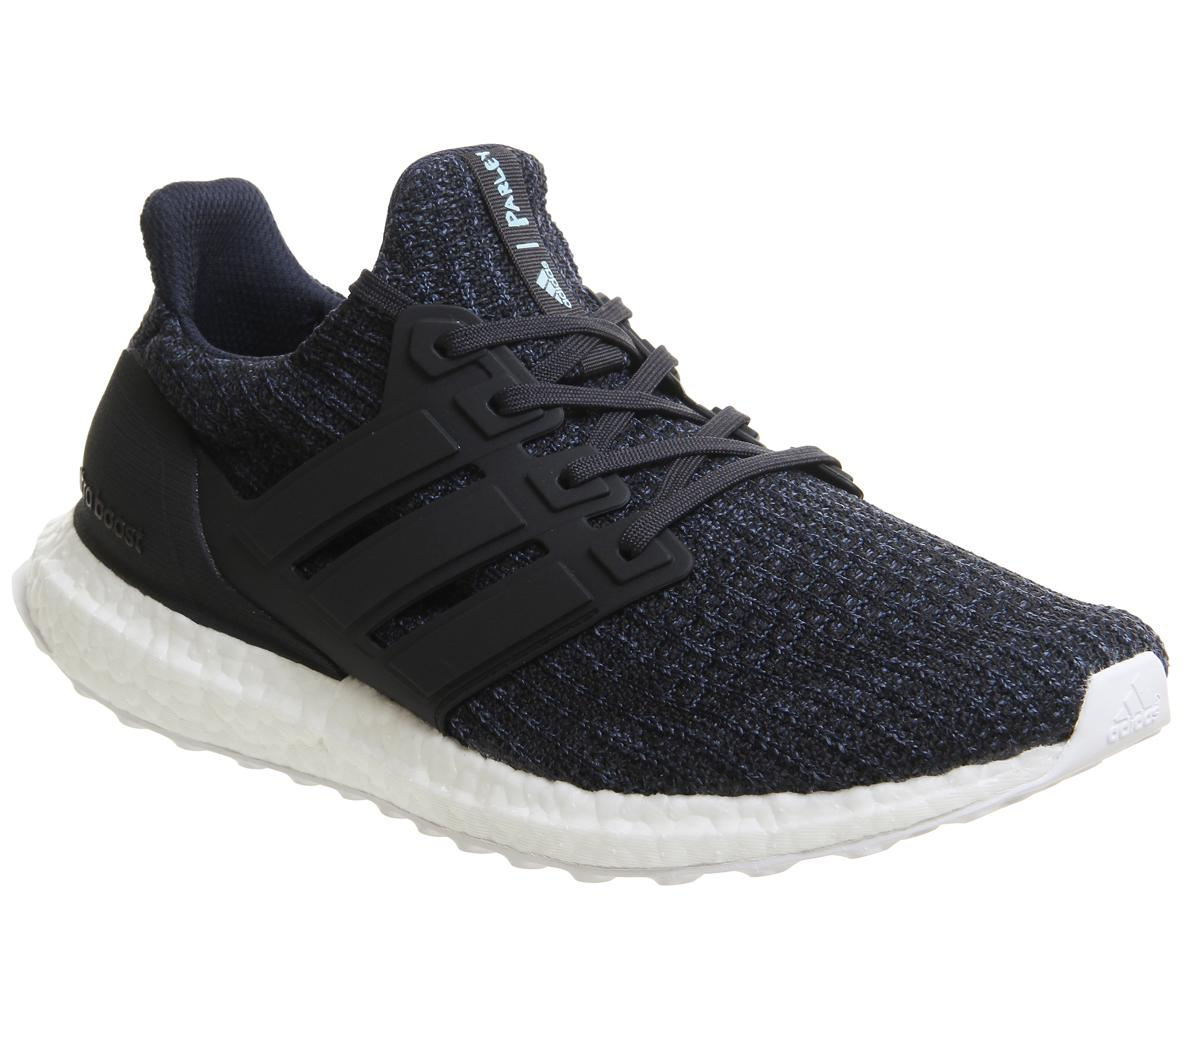 Details about Adidas boost trainers